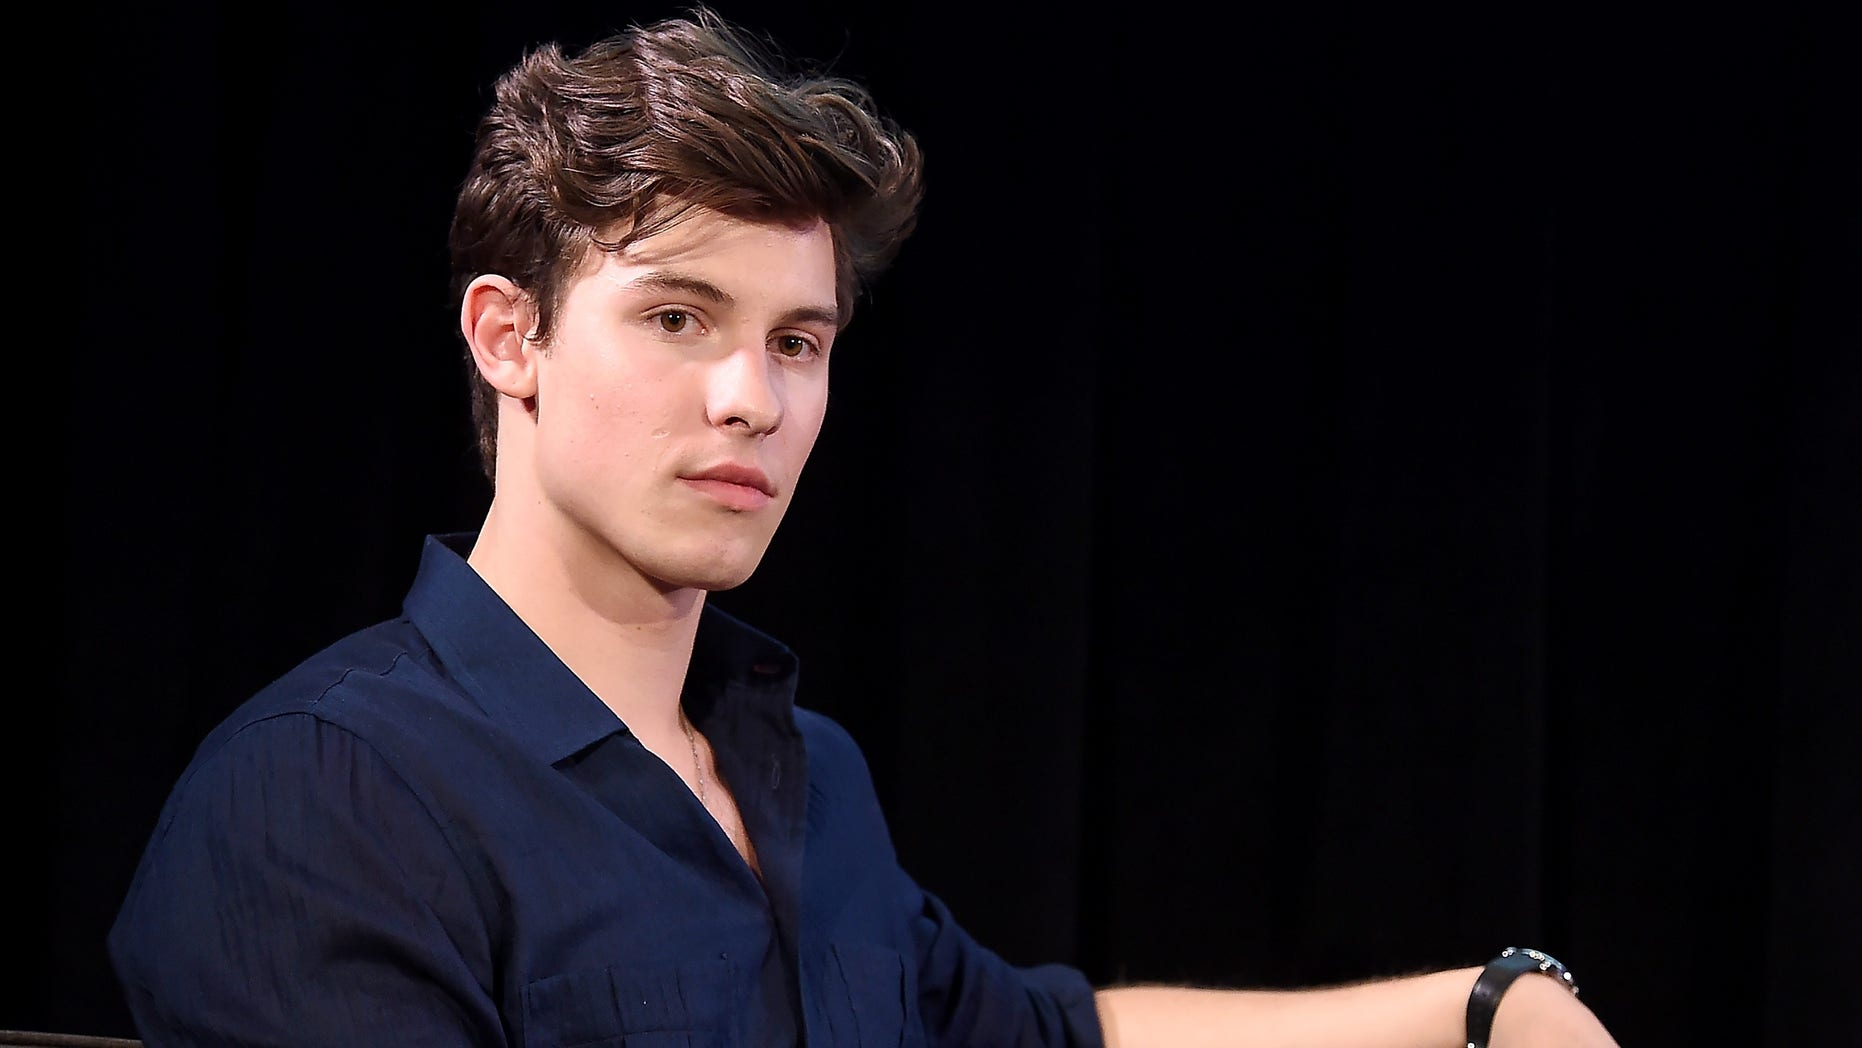 Shawn Mendes addressed rumors about his sexuality.